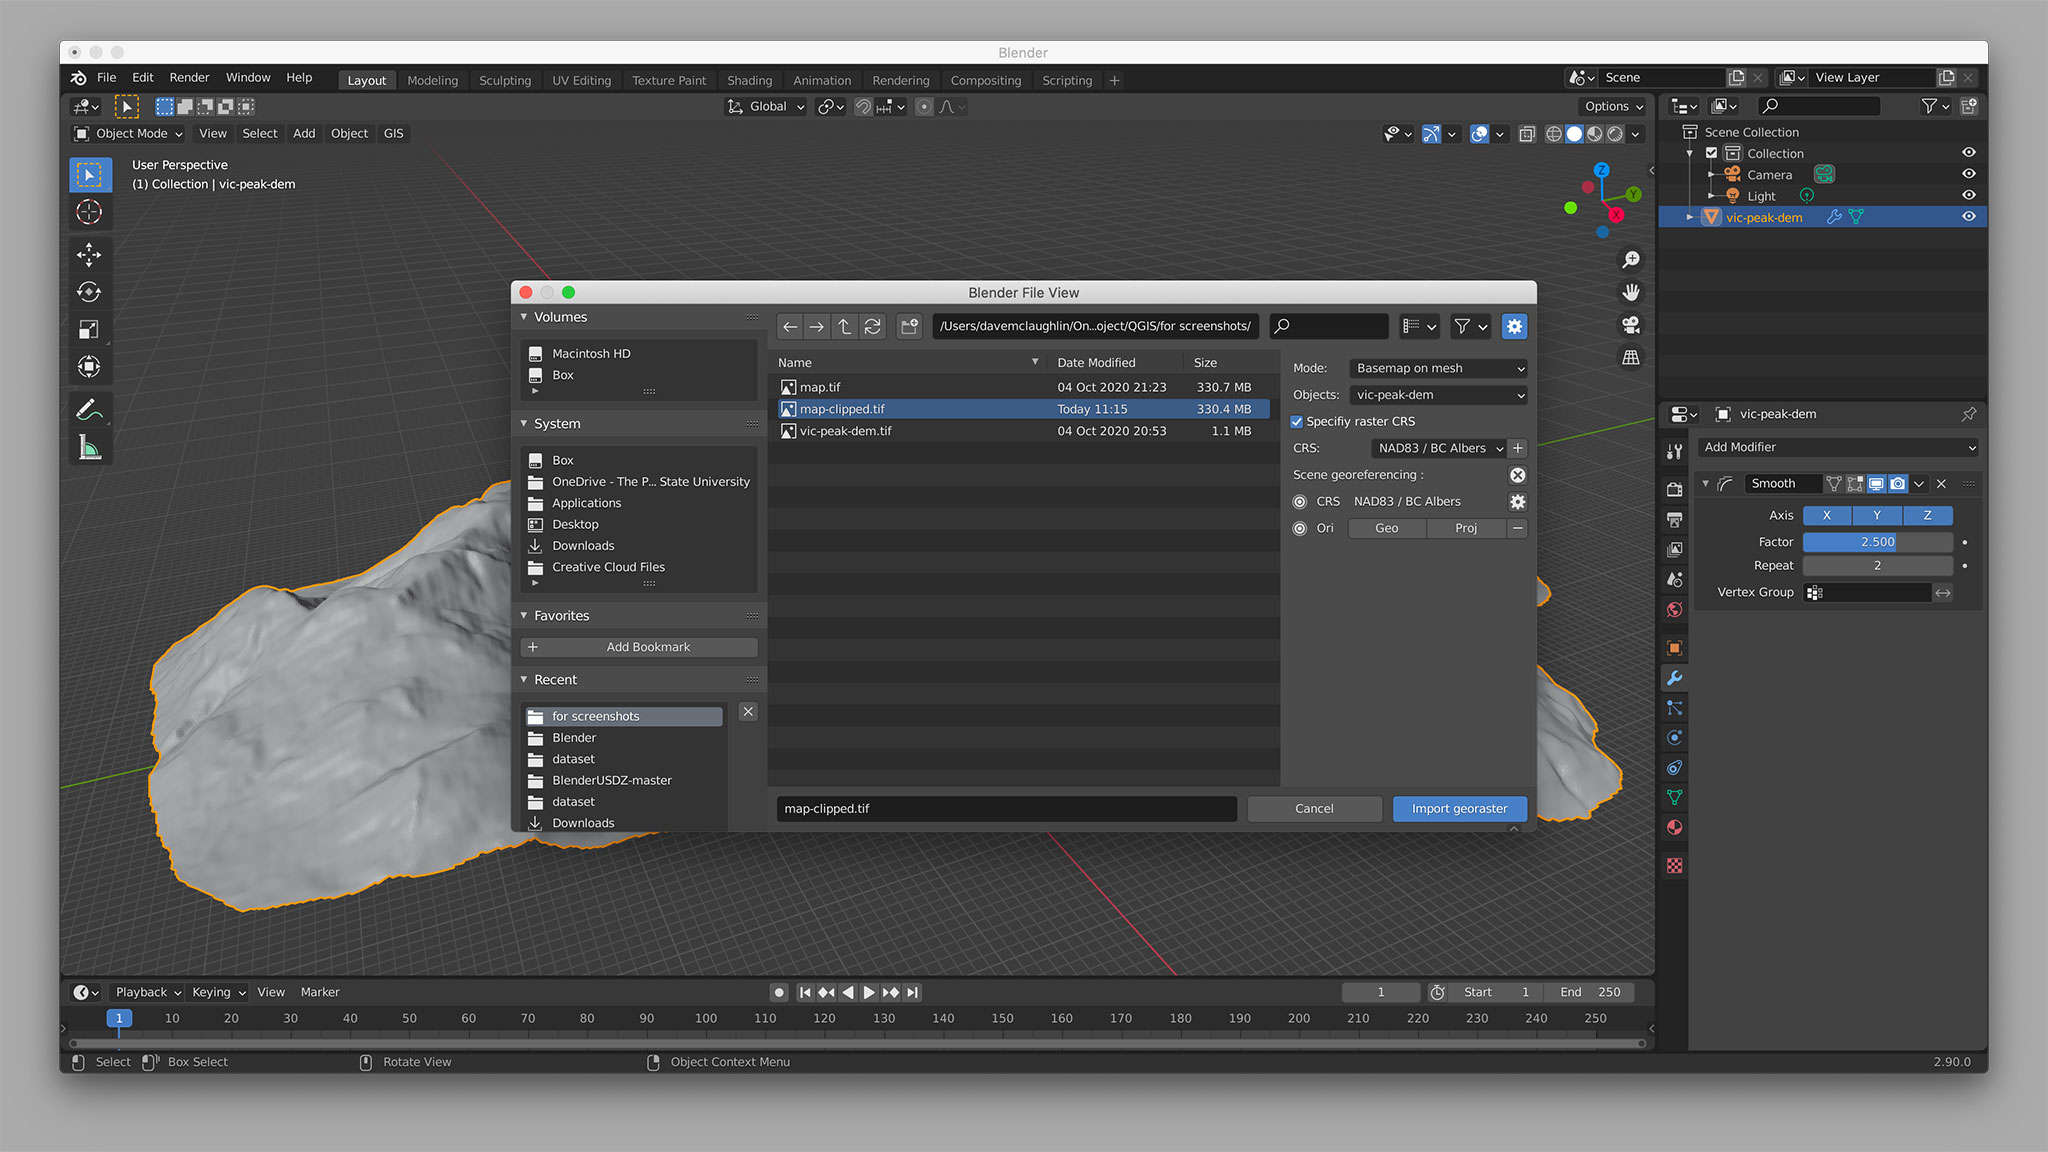 Importing the map TIFF in Blender